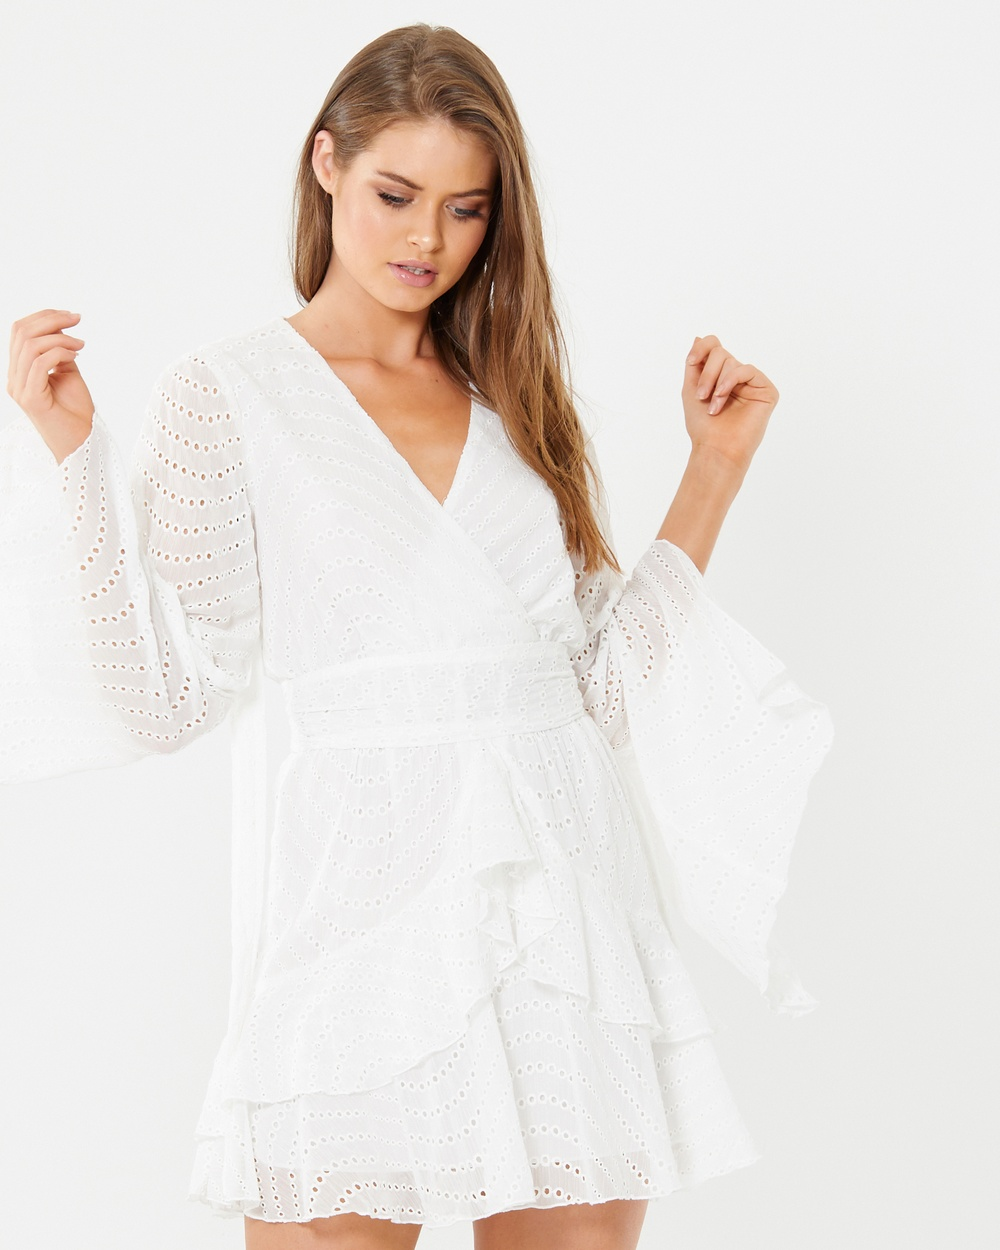 Alys Rylstone Frill Dress Dresses White Rylstone Frill Dress